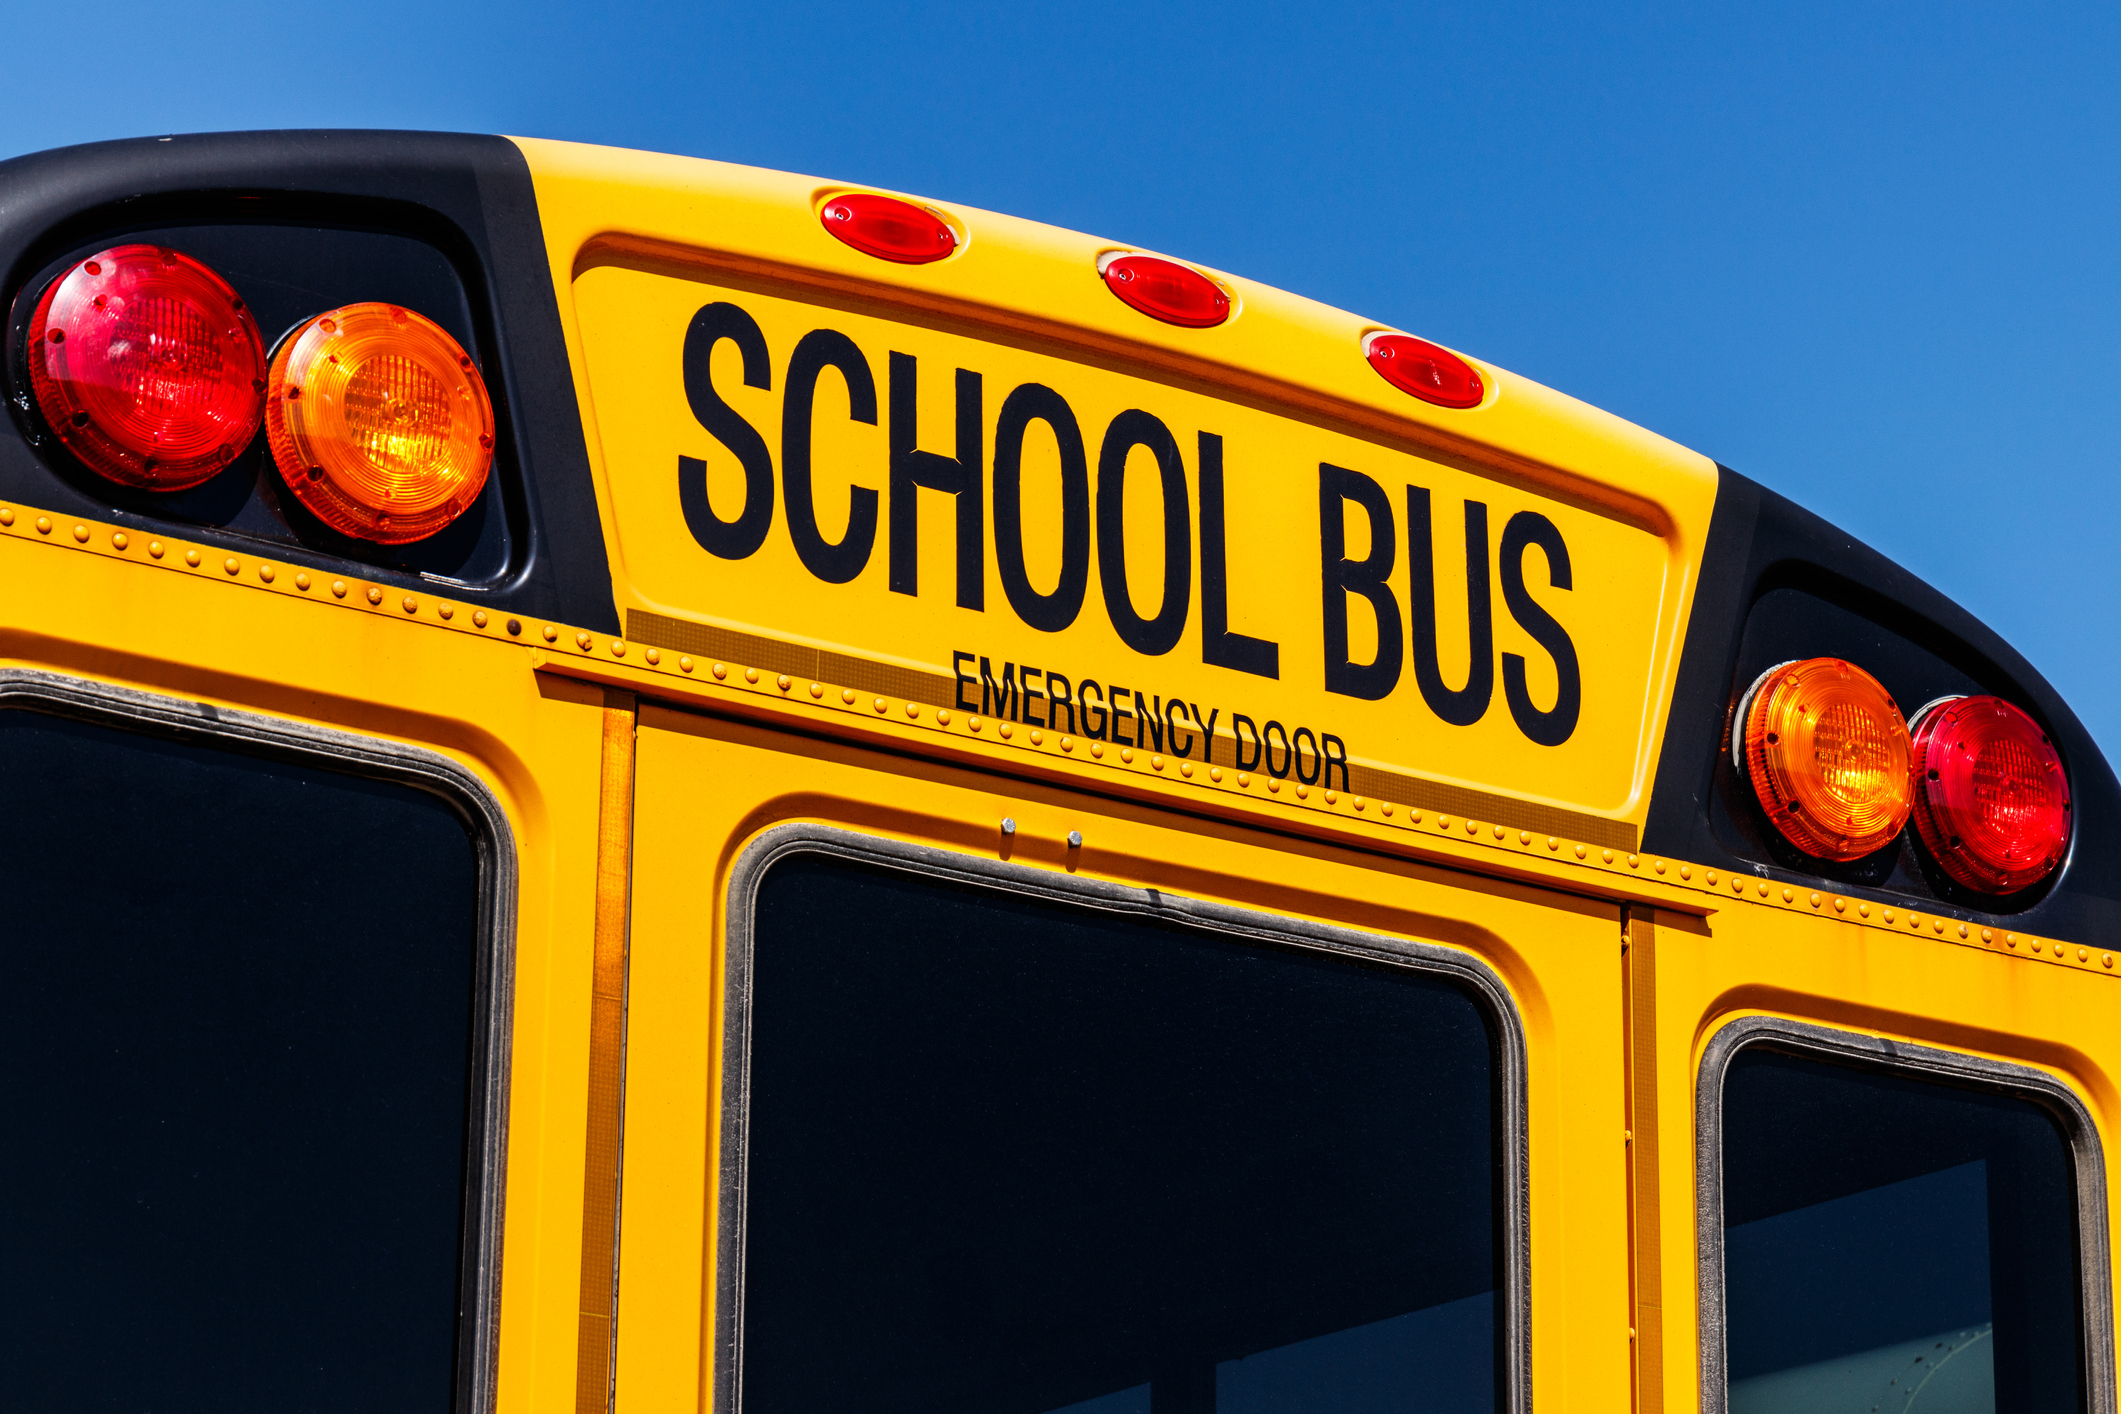 School bus (Getty Images)